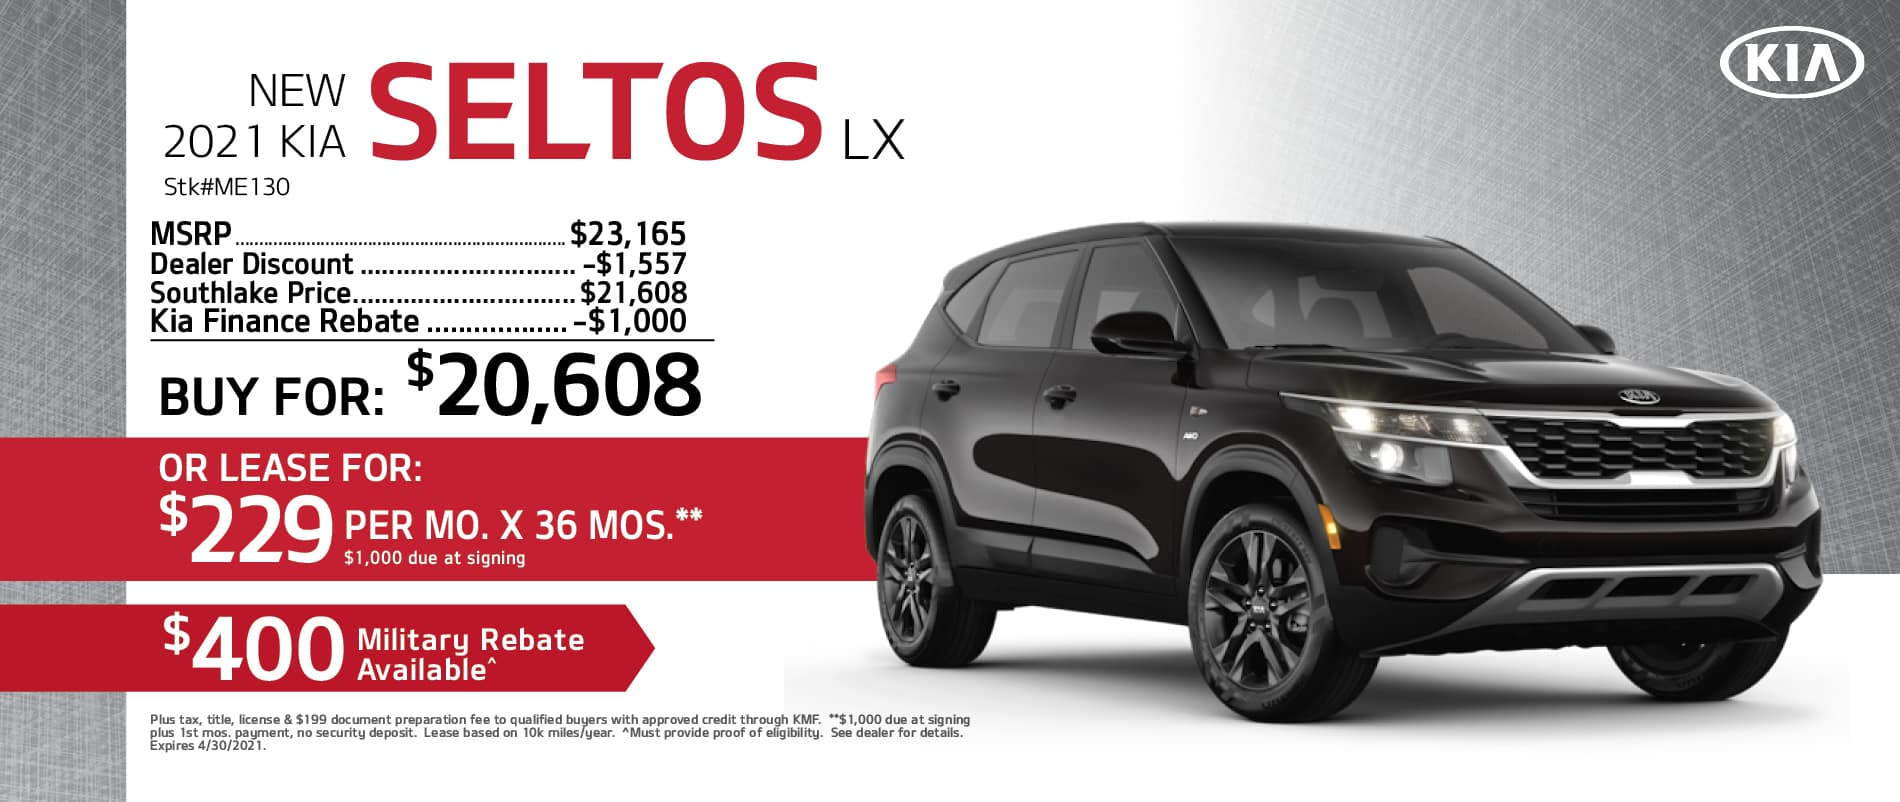 2021 Kia Seltos Buy or Lease Offer | Merrillville, Indiana